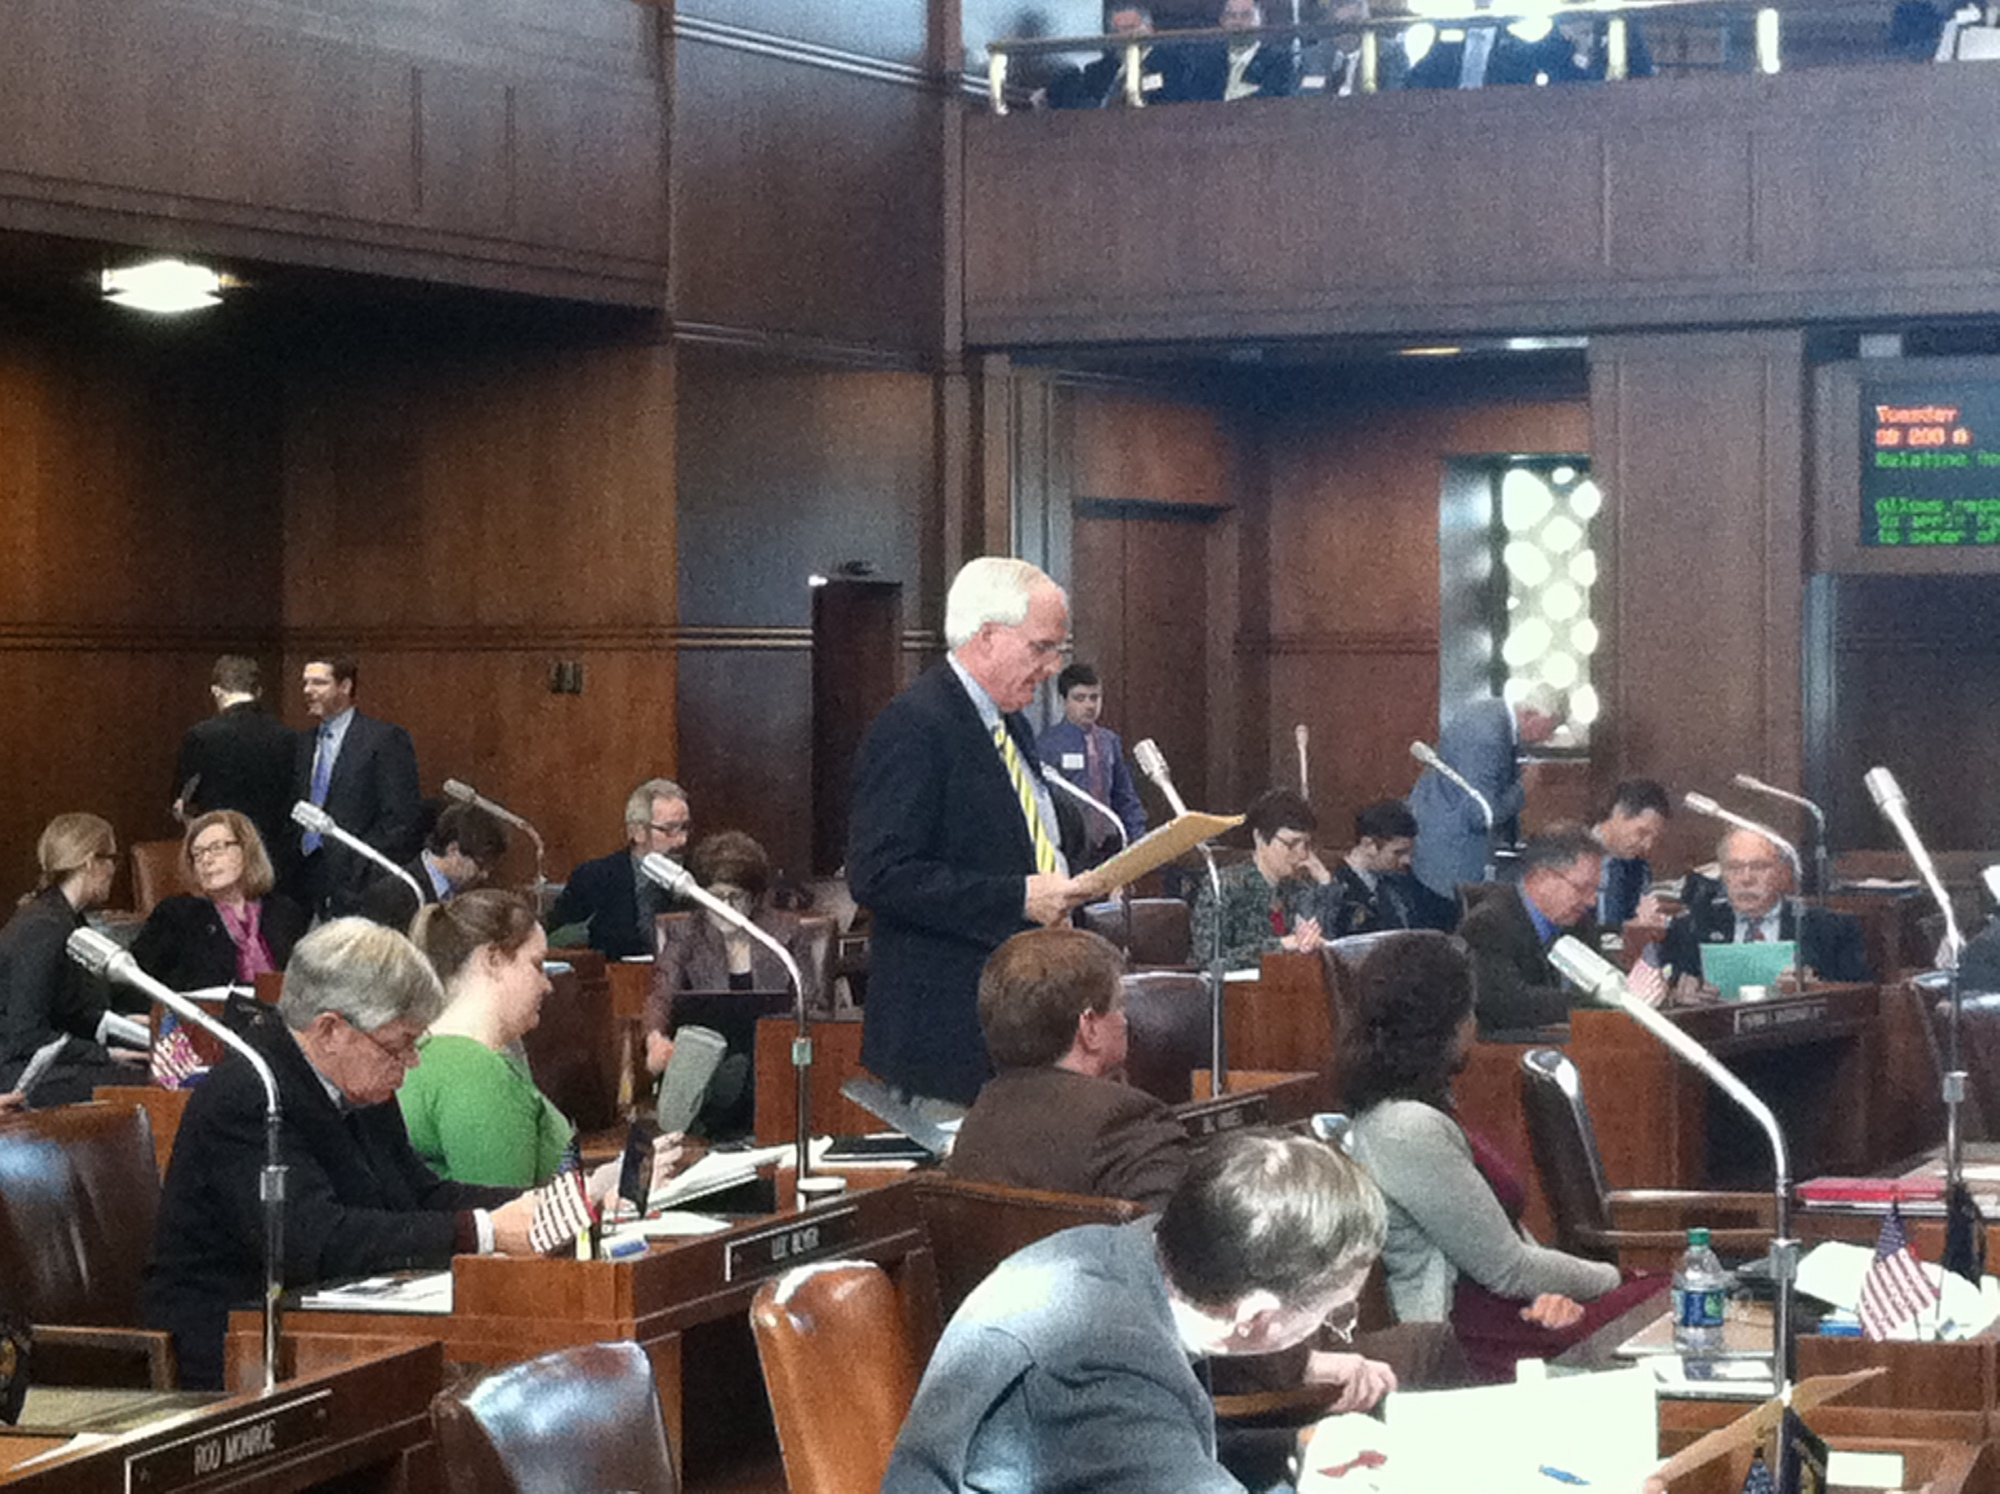 Speaking on the Senate Floor during the passage of Senate Bill 200 on a 29-0 vote in favor.